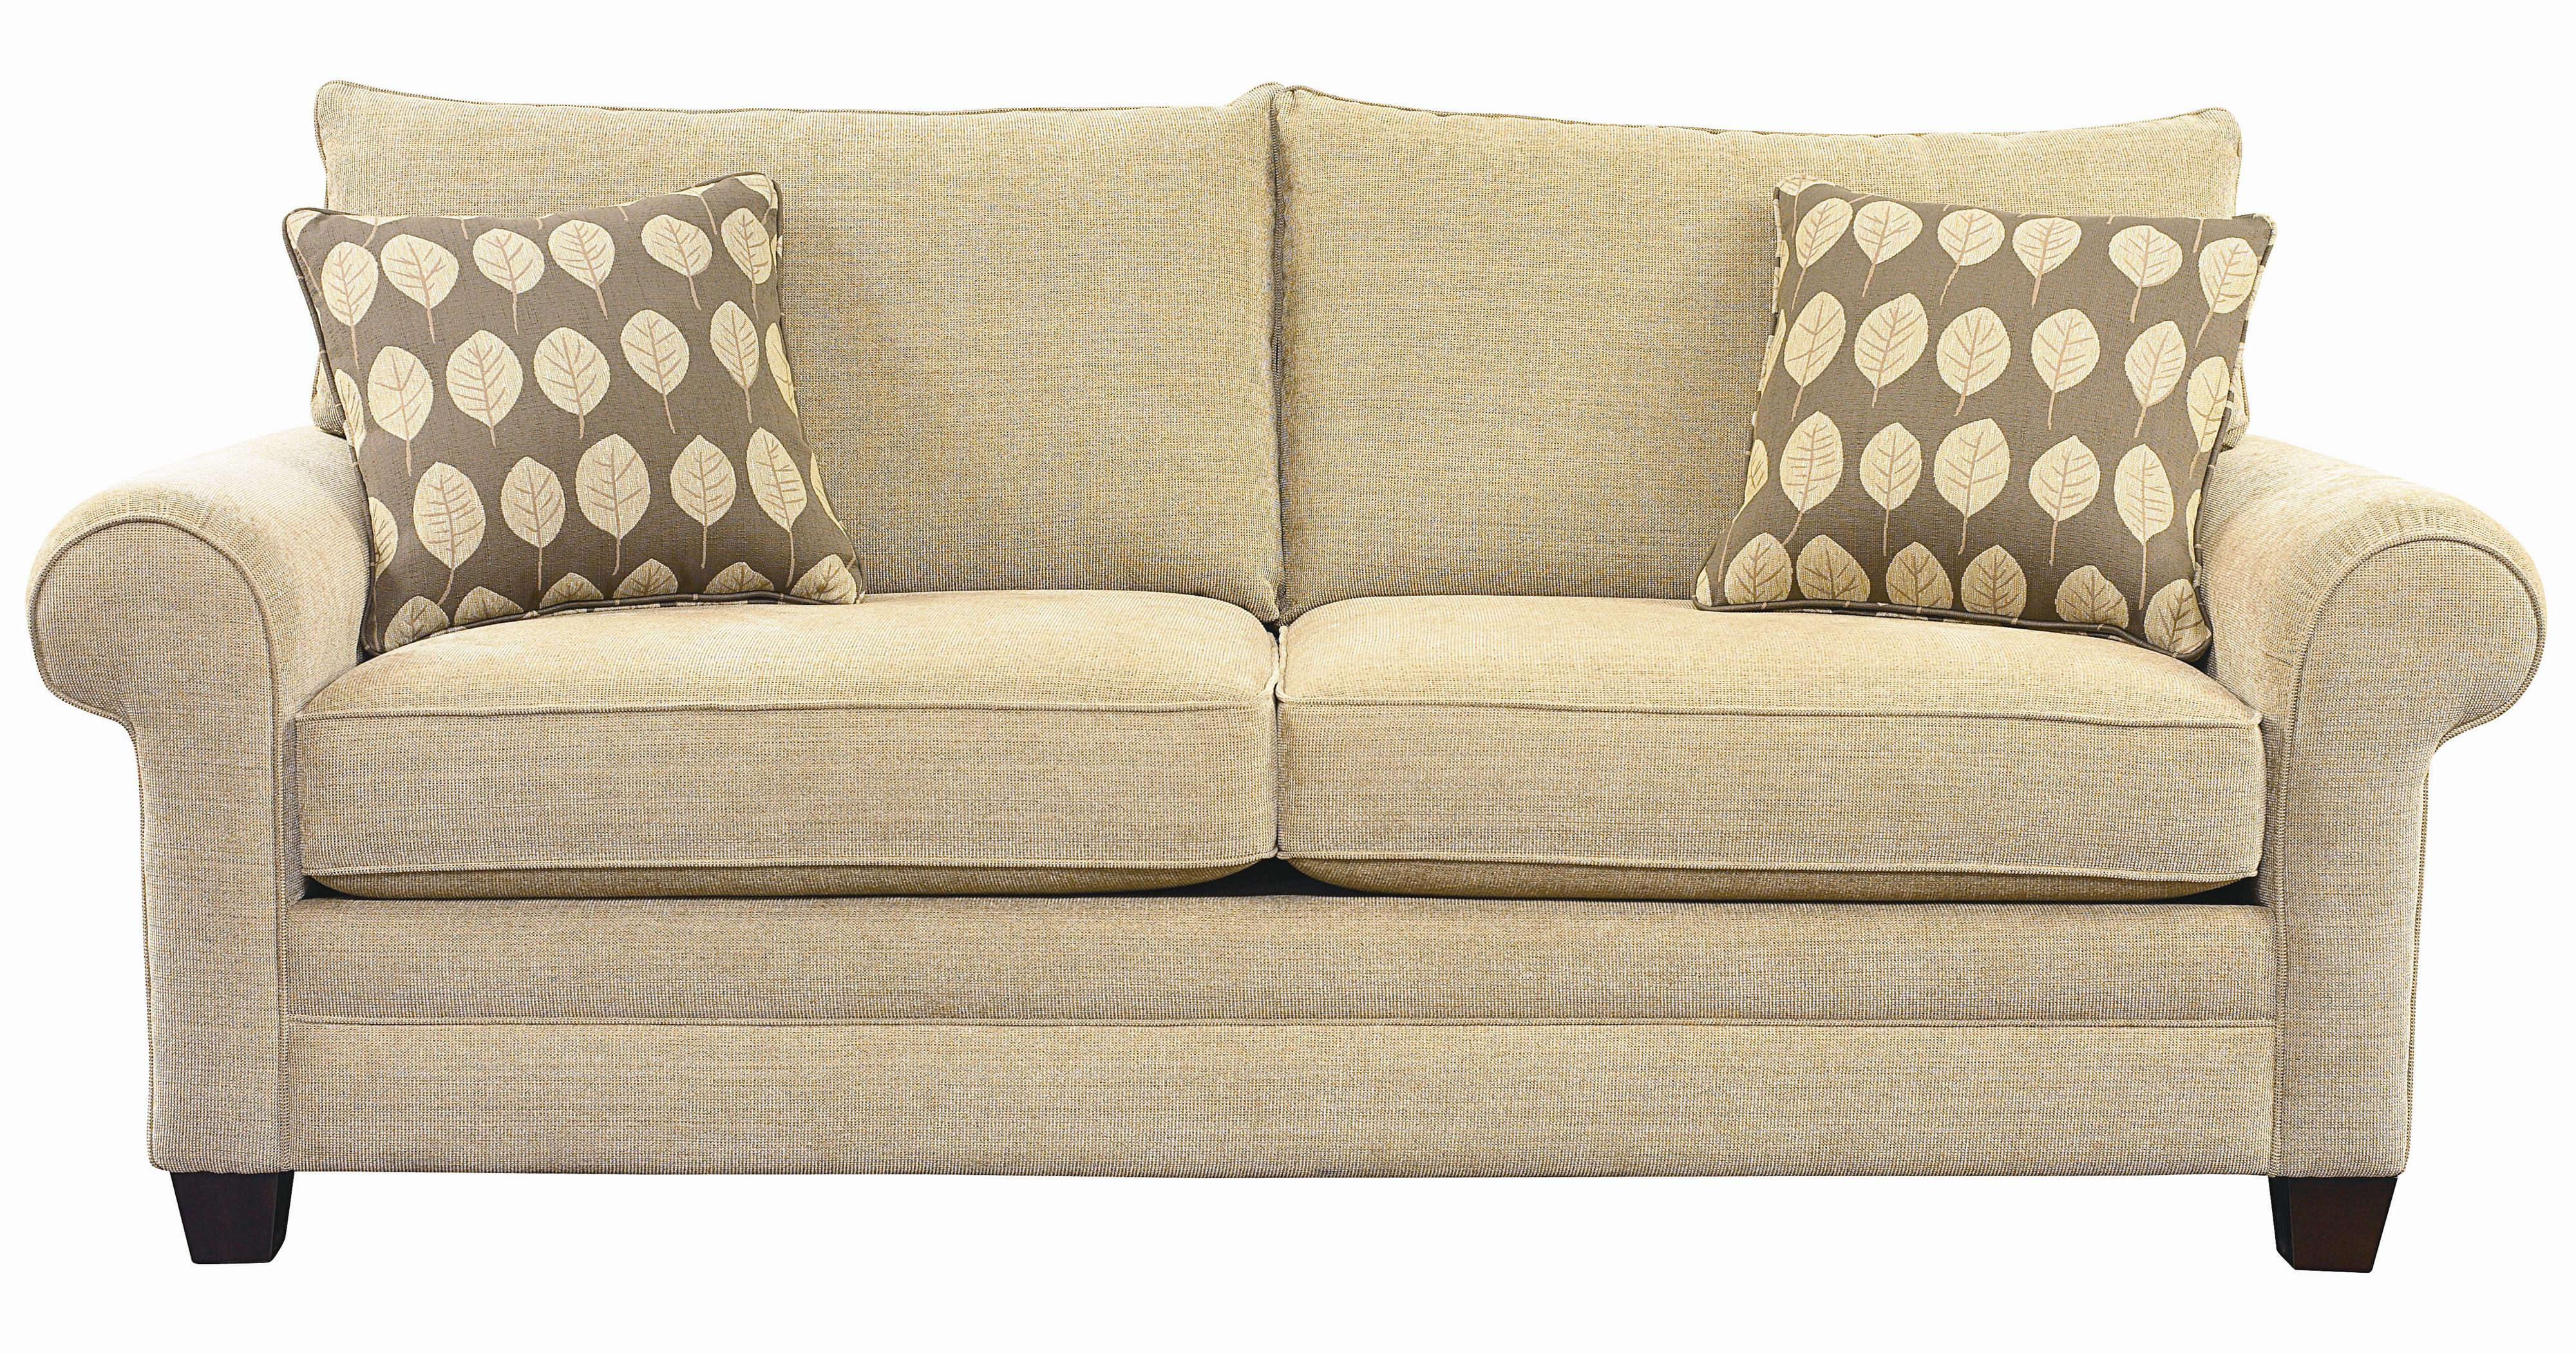 Superieur Bassett Alex Sofa With Exposed Wood Wedge Legs | Wayside Furniture | Sofas